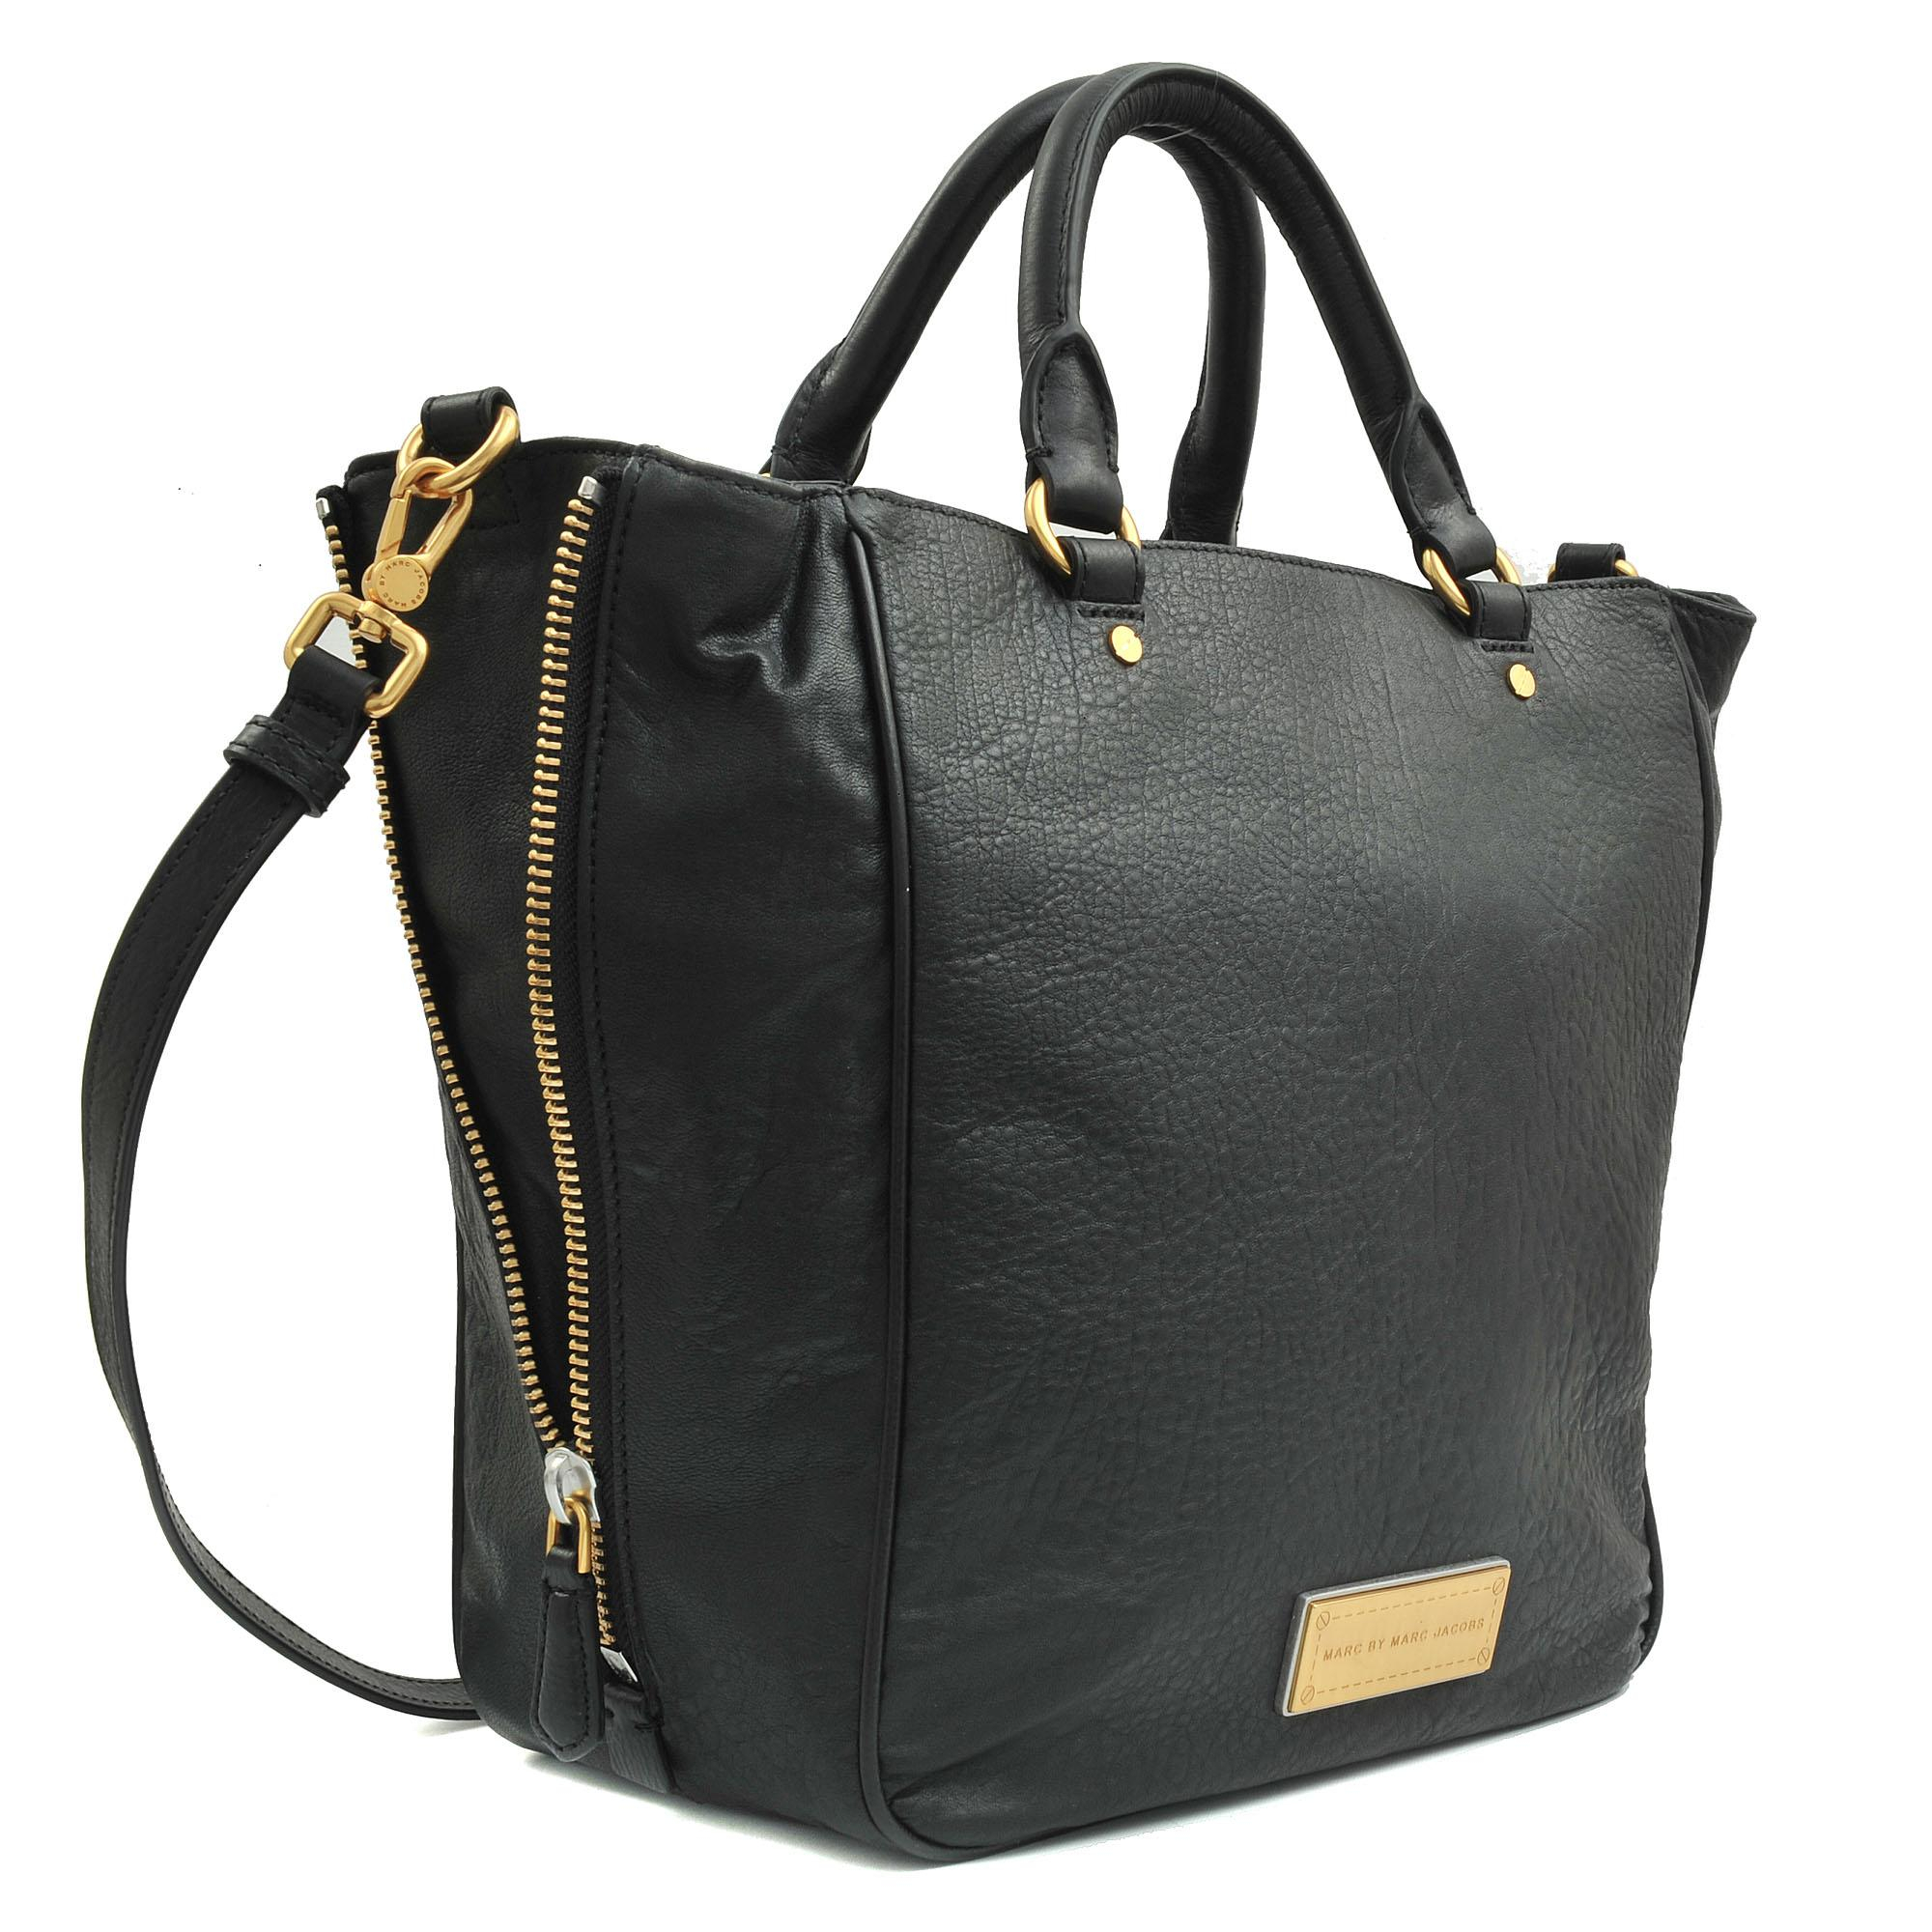 9097affa0ed Marc By Marc Jacobs Washed Up Tote Bag in Black - Lyst